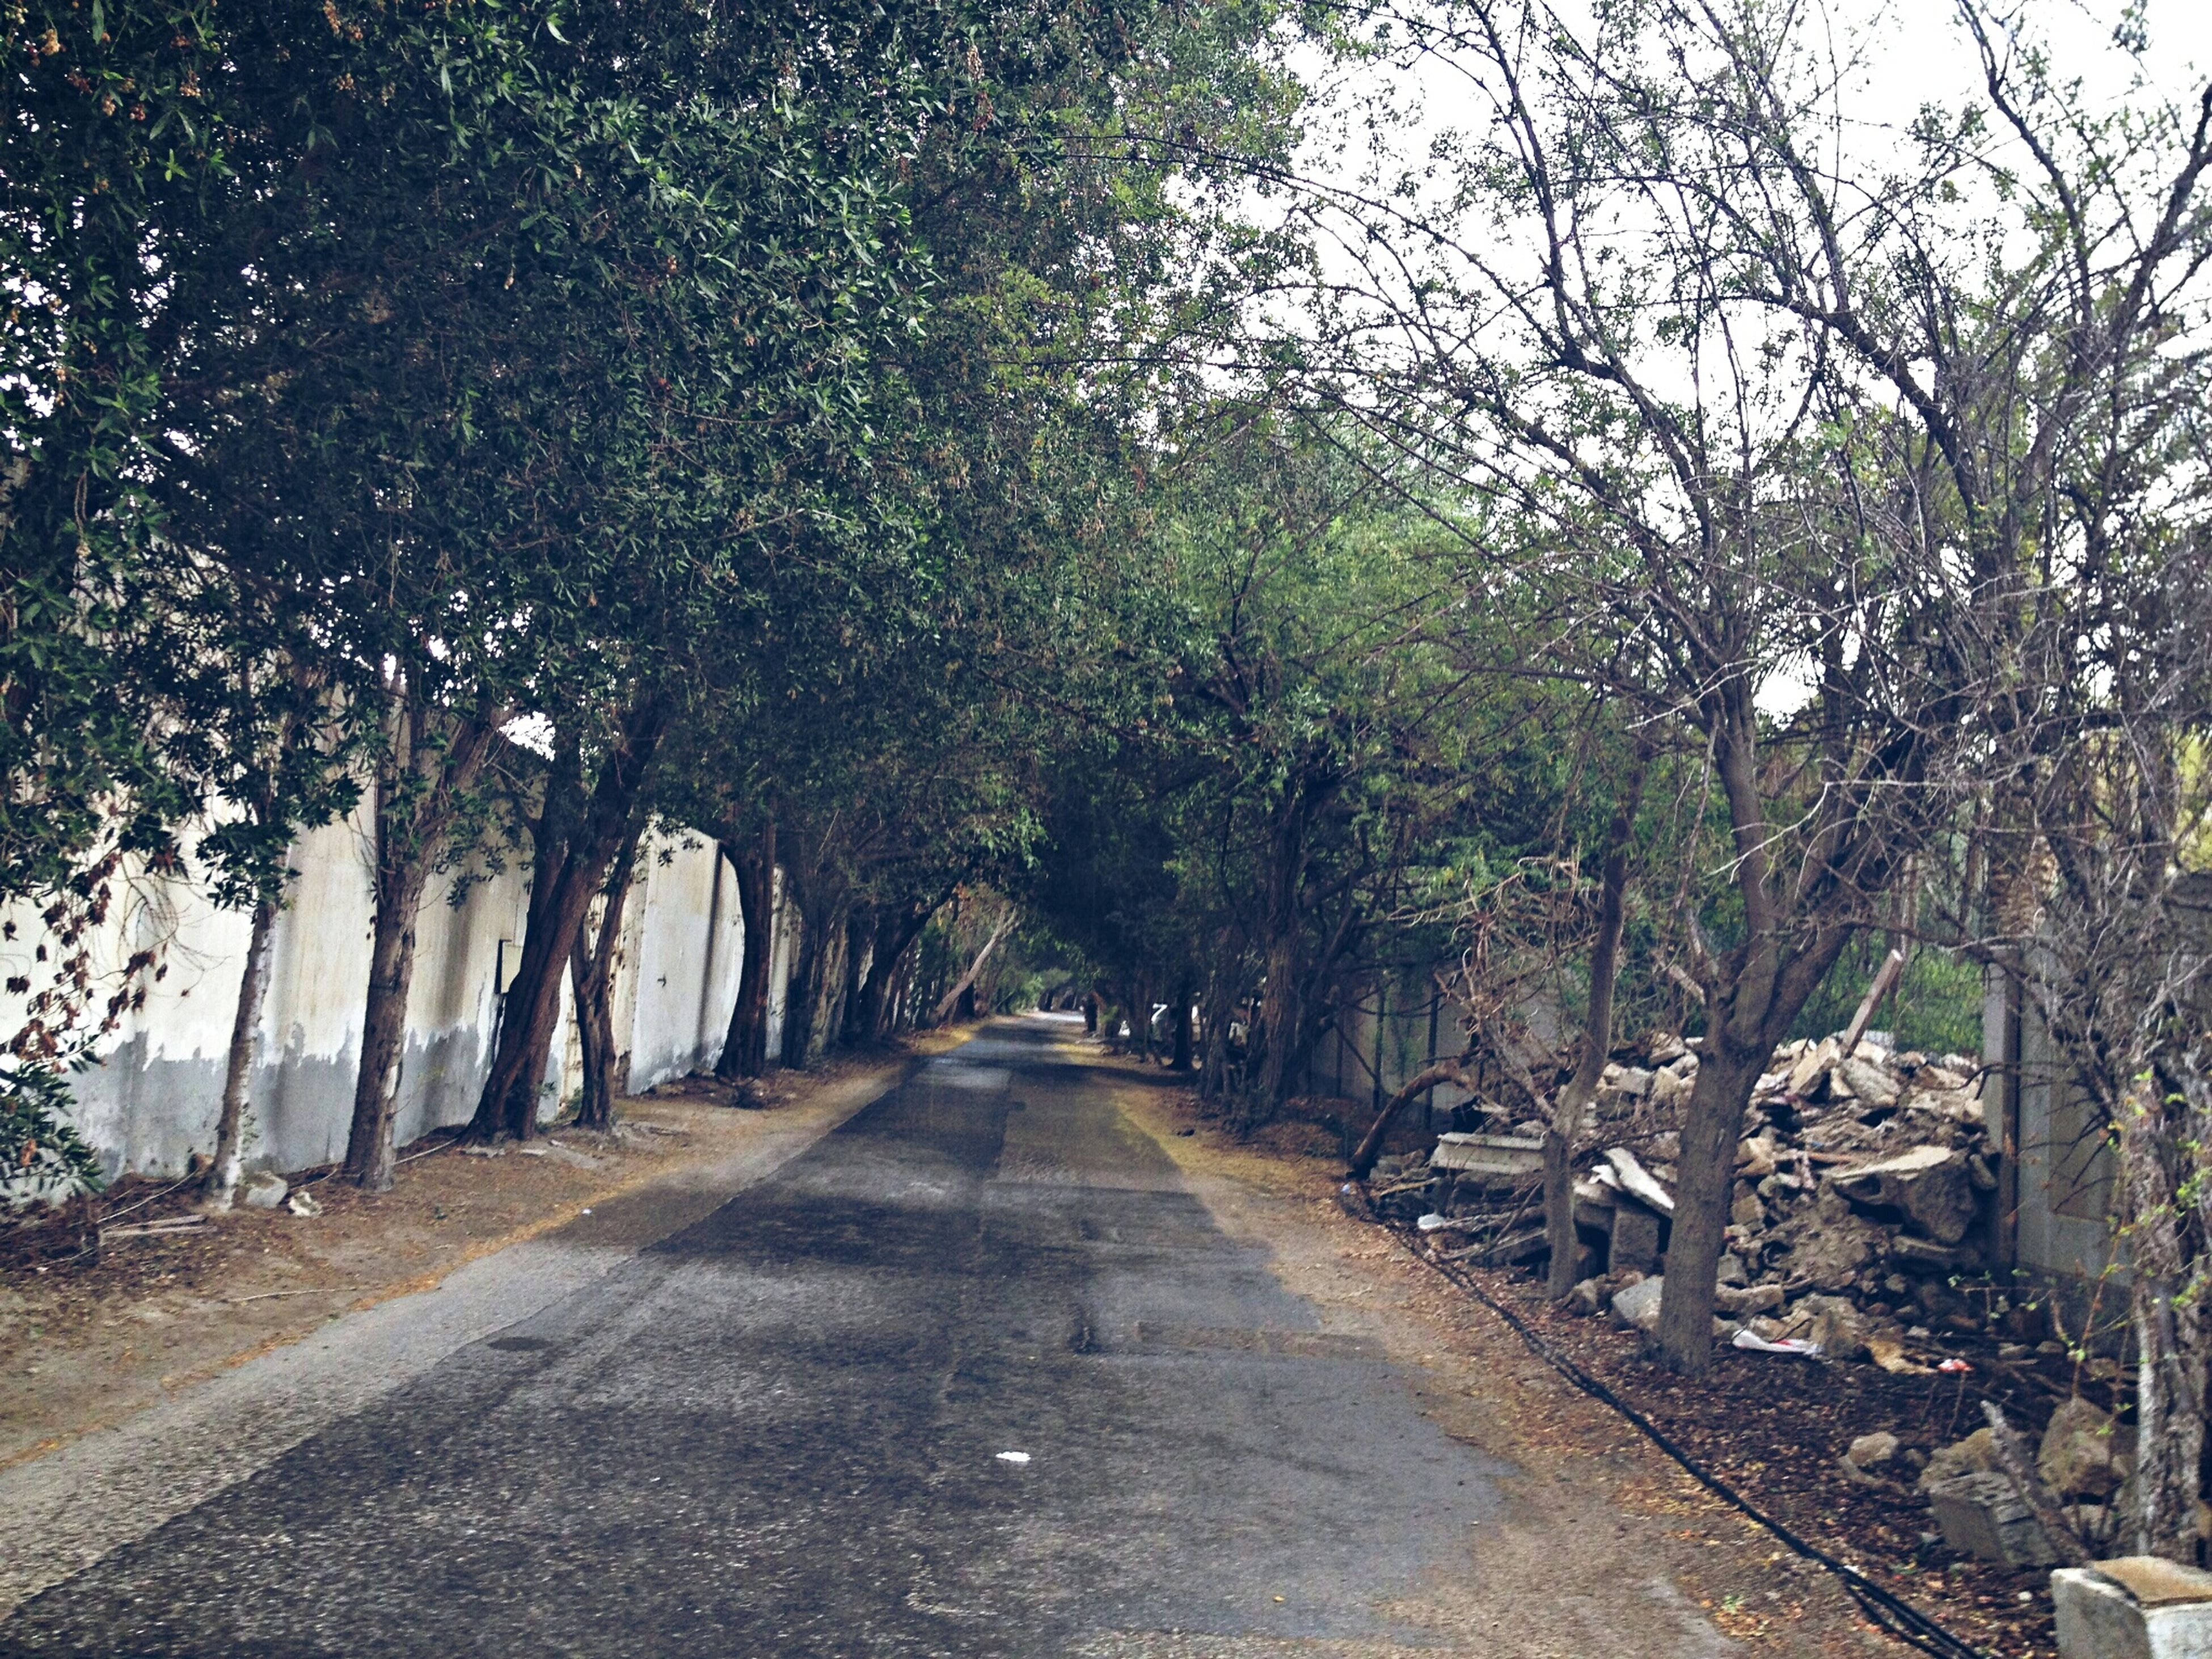 the way forward, tree, diminishing perspective, transportation, vanishing point, road, tranquility, treelined, empty road, nature, growth, tranquil scene, street, branch, day, outdoors, forest, long, no people, sky